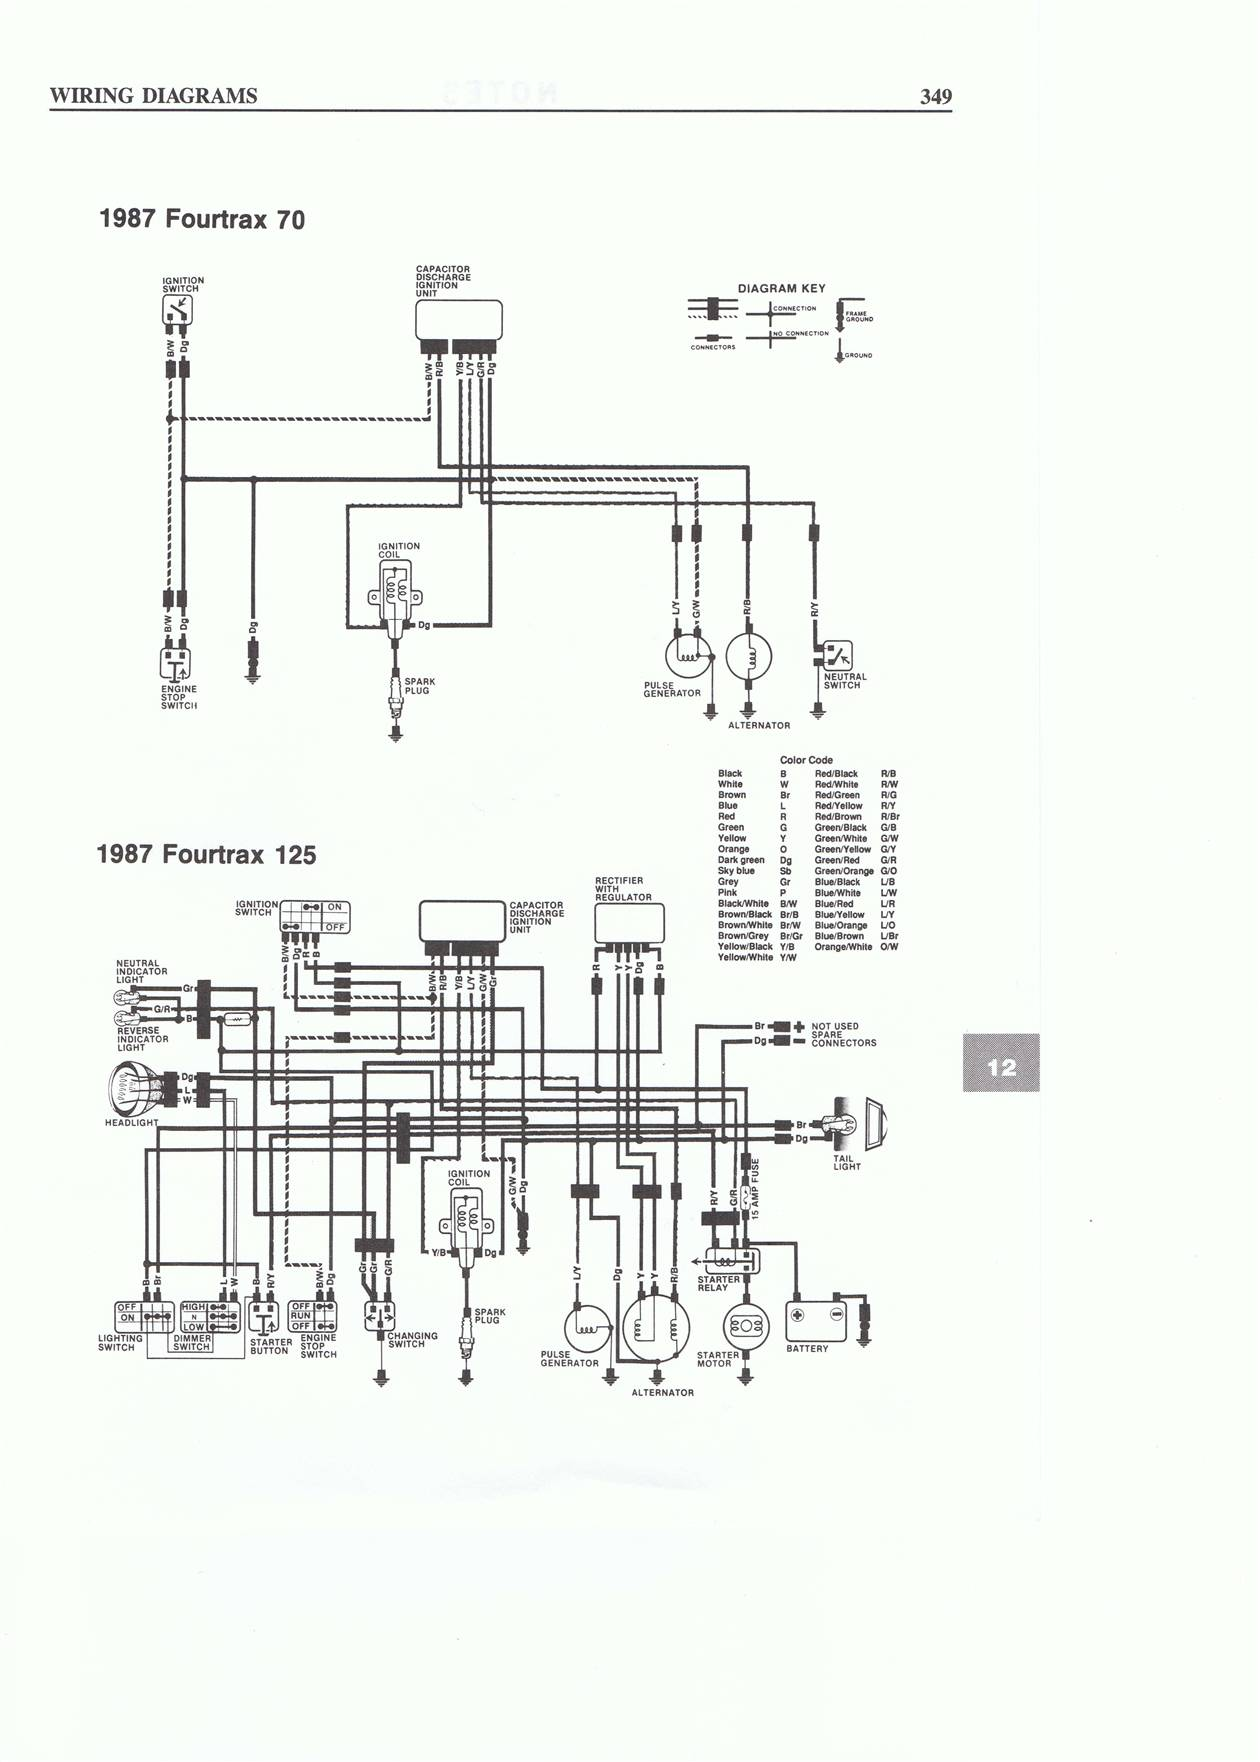 gy6 engine wiring diagram?t=1398725710 gy6 engine wiring diagram 157qmj wiring diagram at honlapkeszites.co